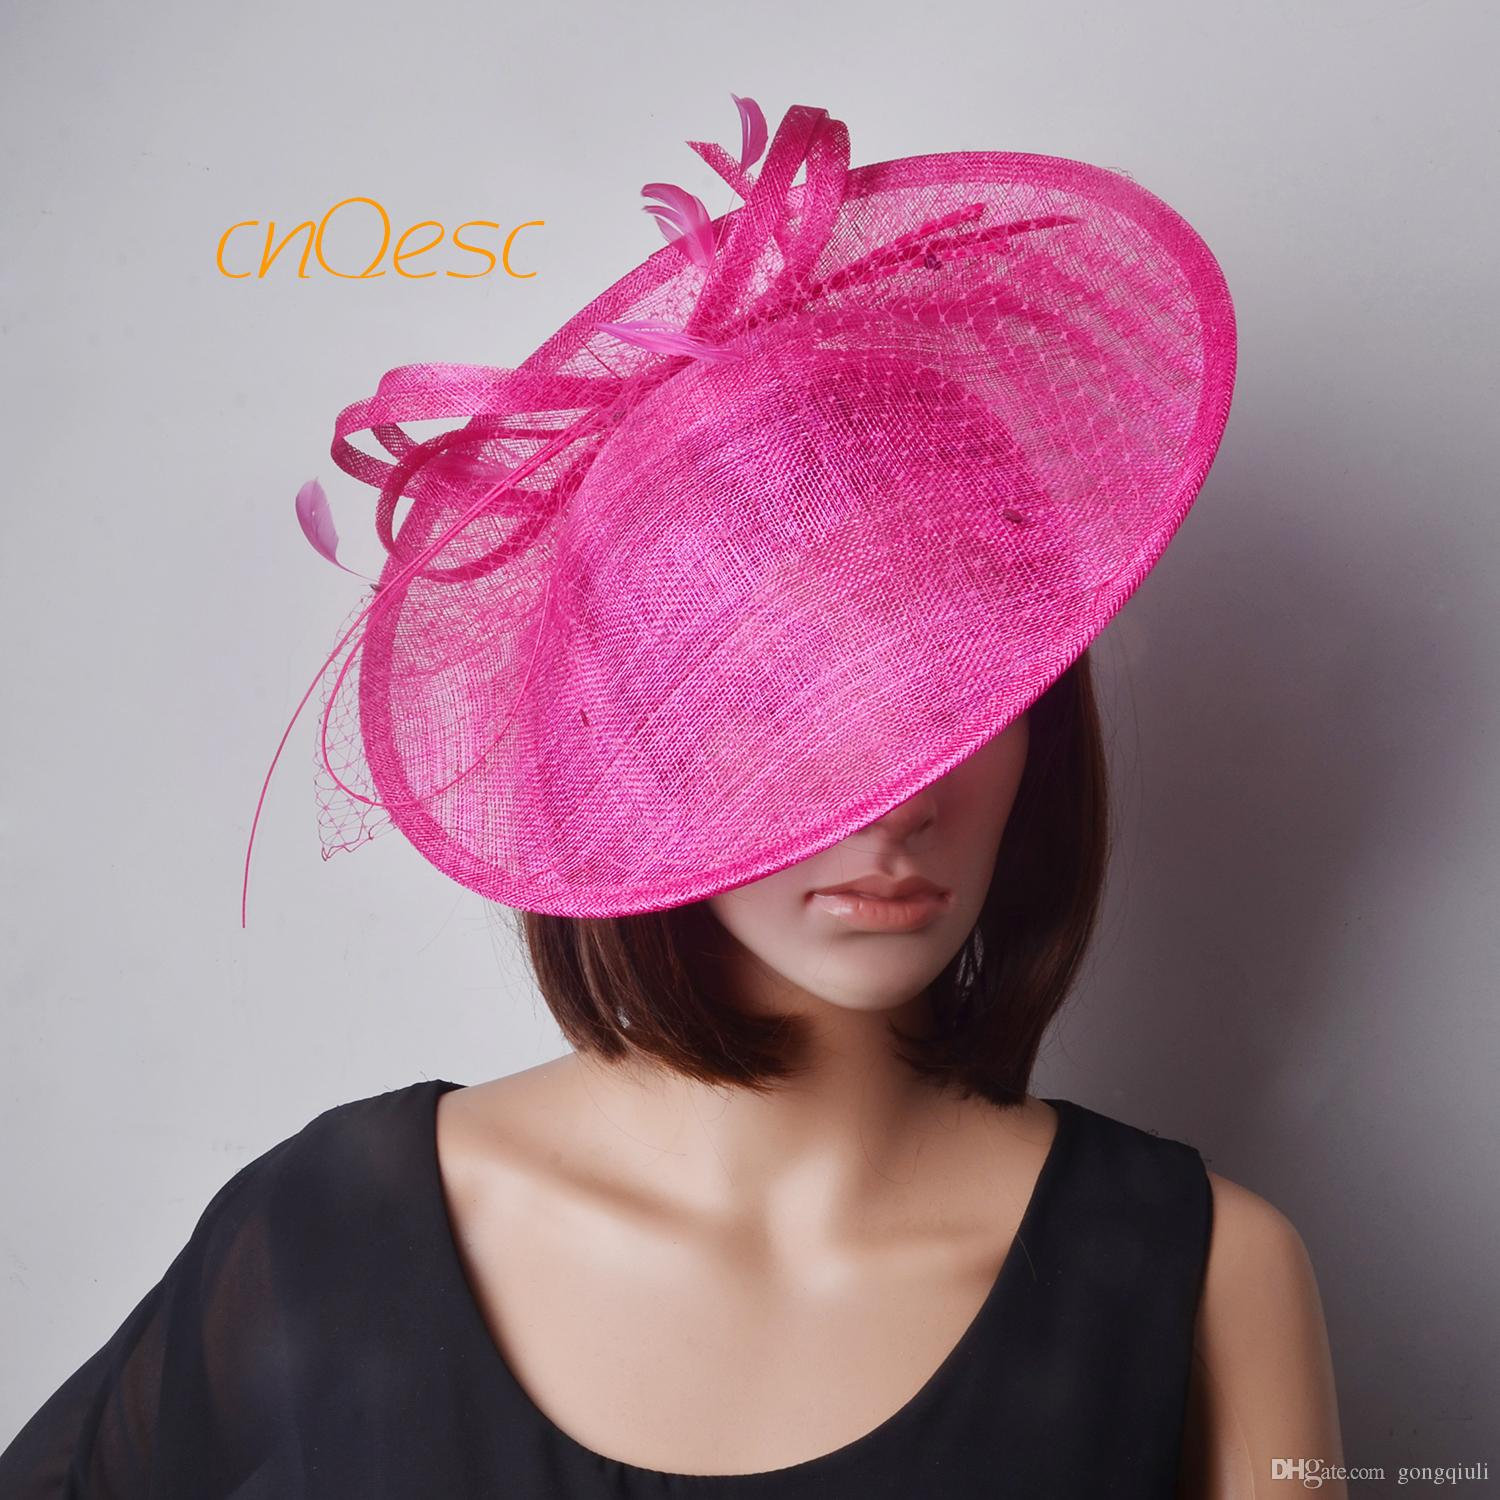 749f4e9d6cb Hot Pink Saucer Fascinator Sinamay Fascinator Formal Hat for Races ...